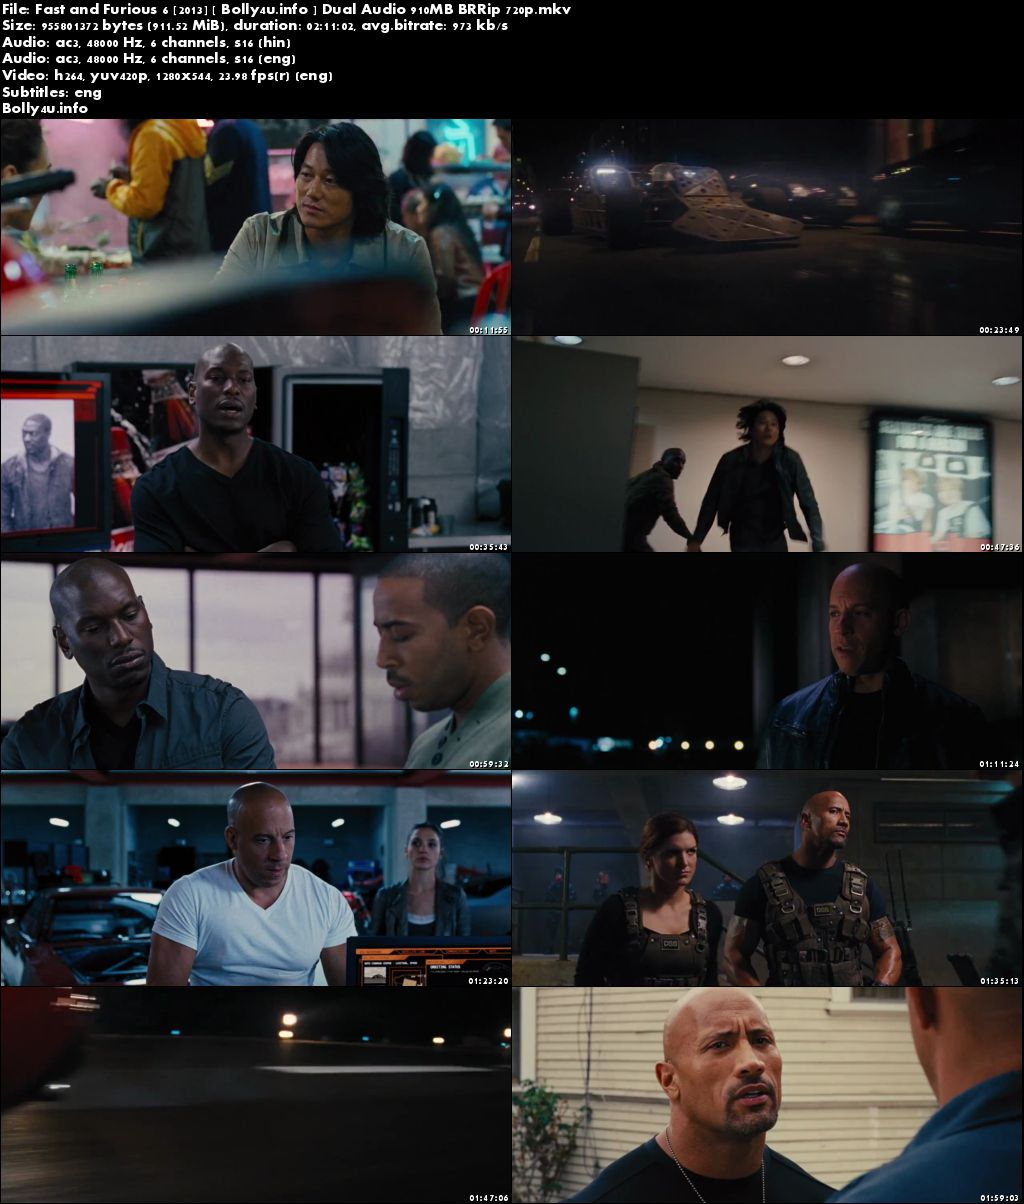 Fast and furious 6 720p torrent